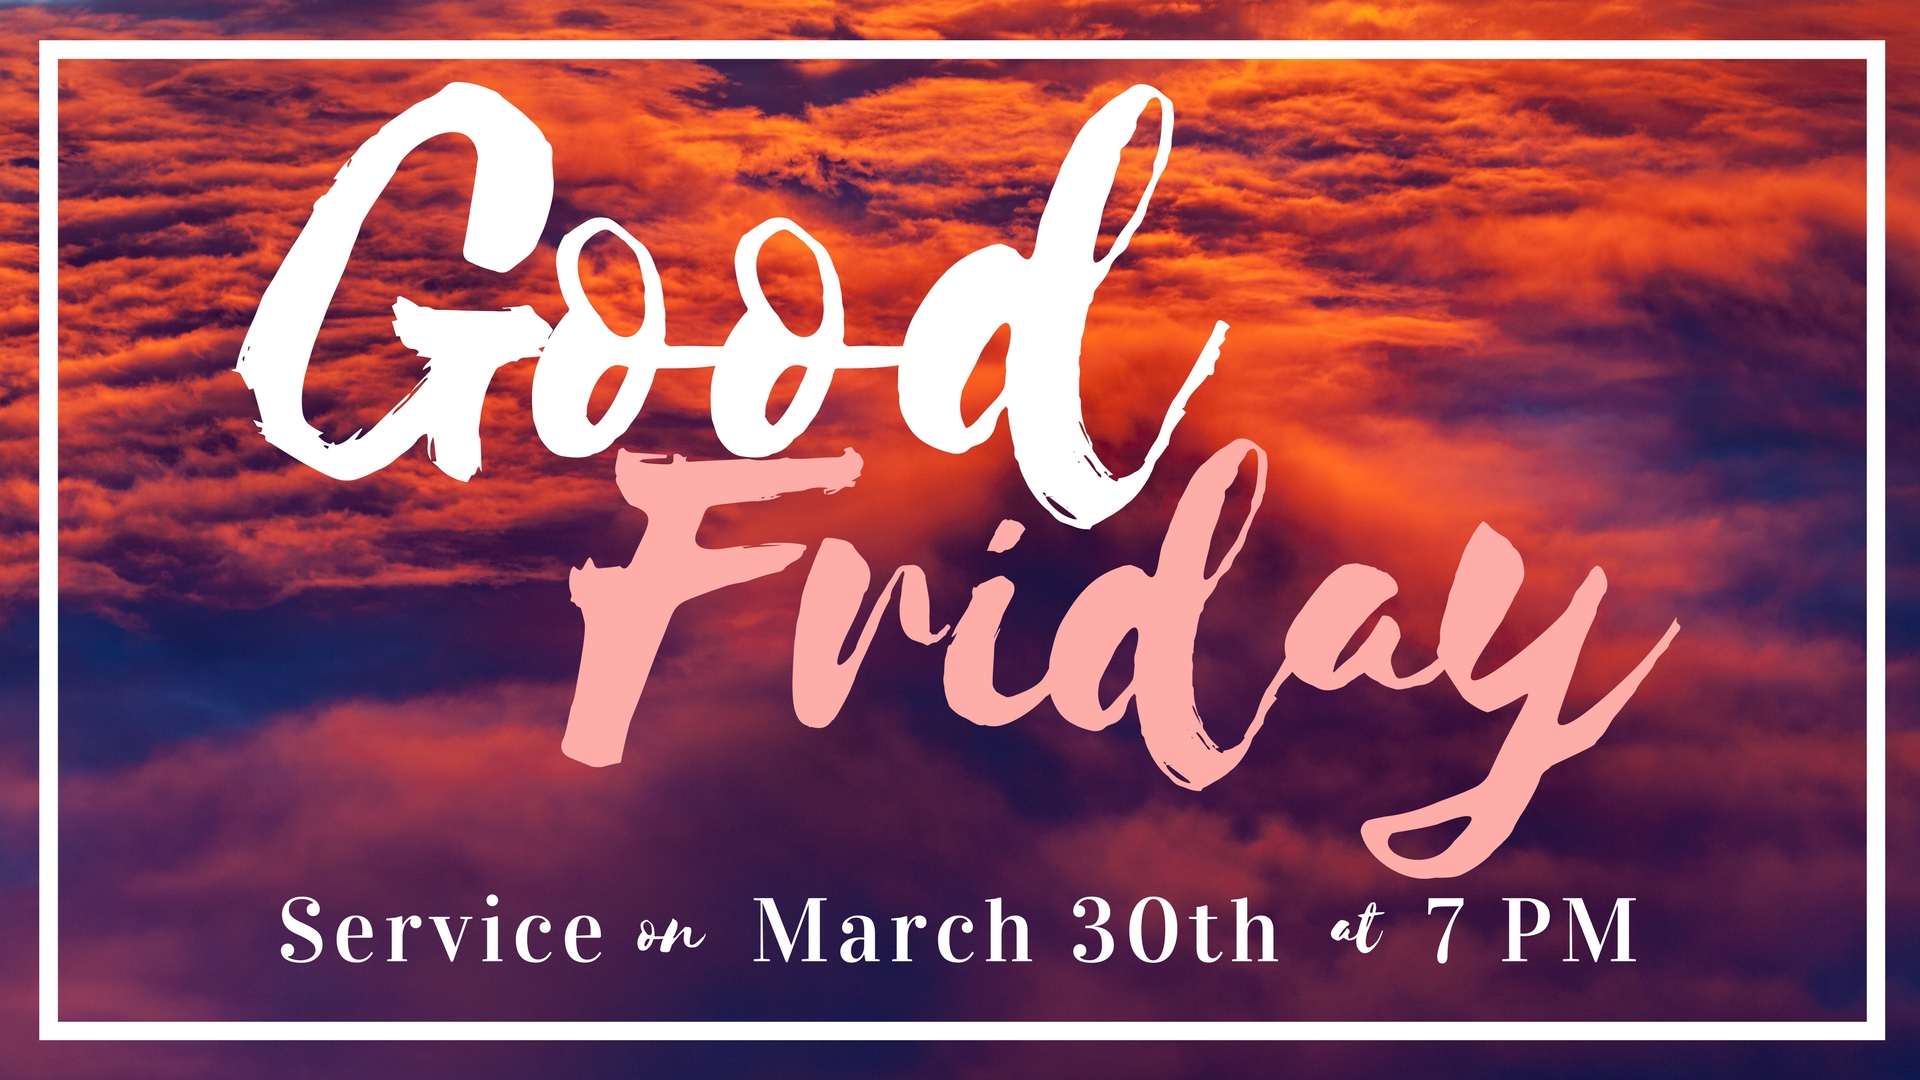 Copy of Good Friday_final 3.56.08 PM.jpg